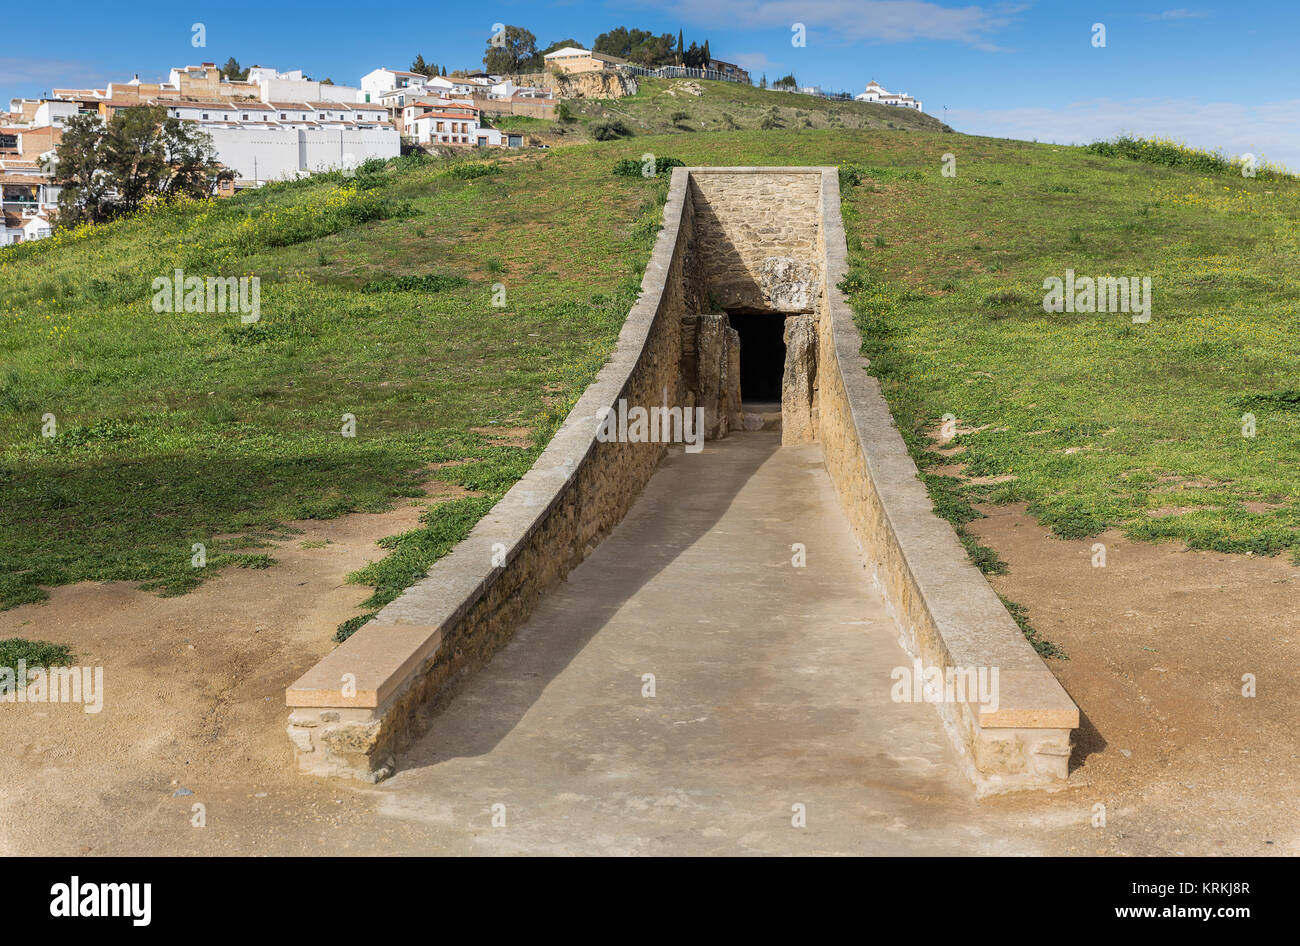 The Dolmen de Viera is in the Spanish town of Antequera (Málaga). Exterior view of the tumulus, and the entrance - Stock Image